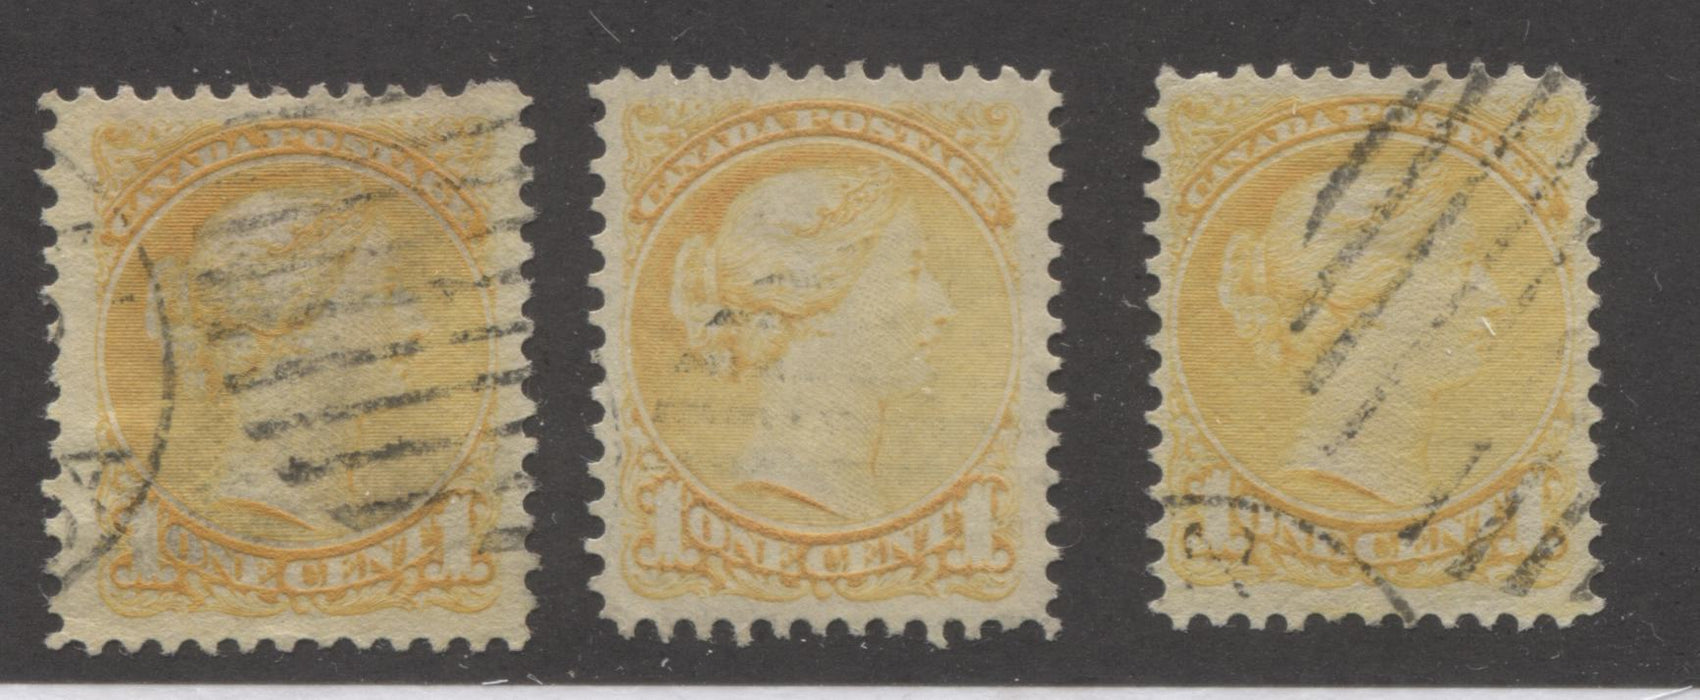 Canada #35/35i 1c Yellow Queen Victoria, 1870-1897 Small Queen Issue, Three Very Fine Used Examples of the Late Montreal Printing, and Second Ottawa Printing, Each a Different Shade or Paper, Perf. 12.25 x 12 Brixton Chrome